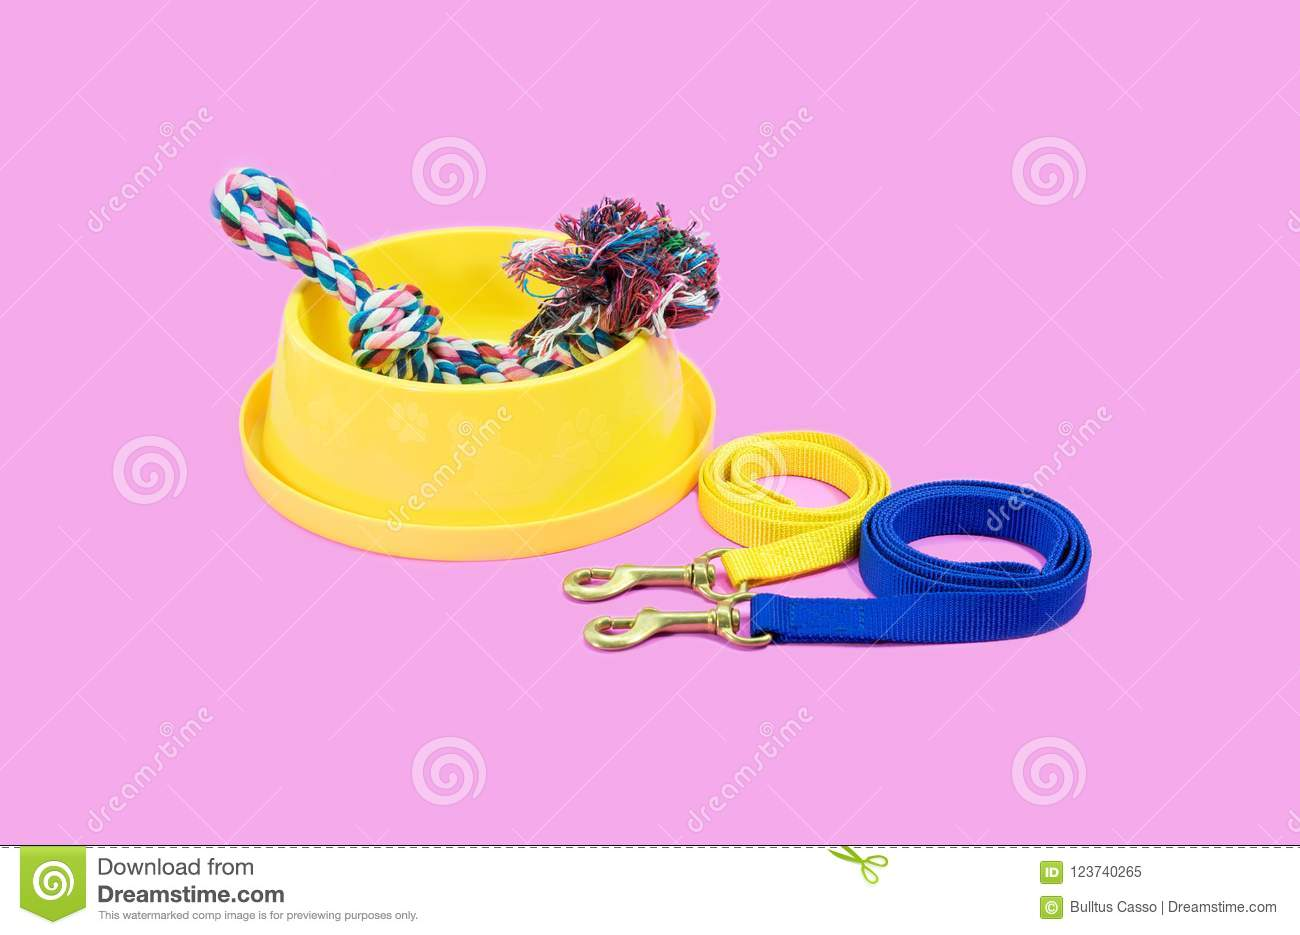 Pet supplies concept. Bowl with leash and rope on pink